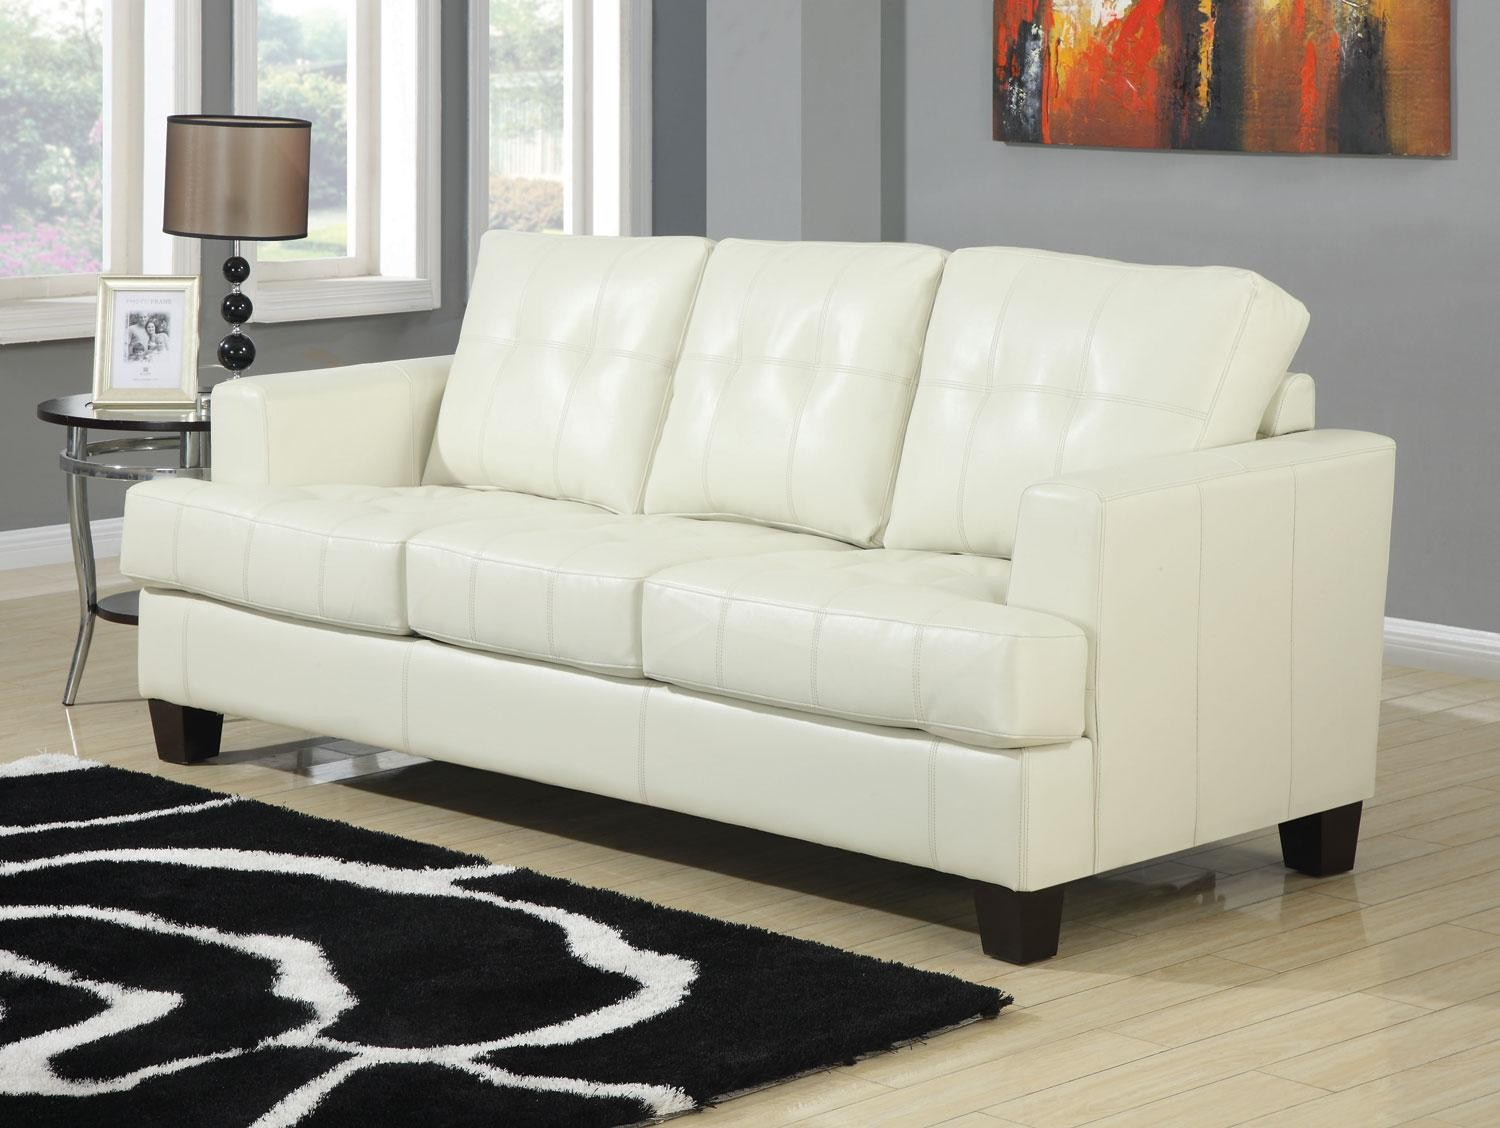 cream leather living room chairs samuel cream leather living room set 501691 from coaster 13608 | 9 1 2